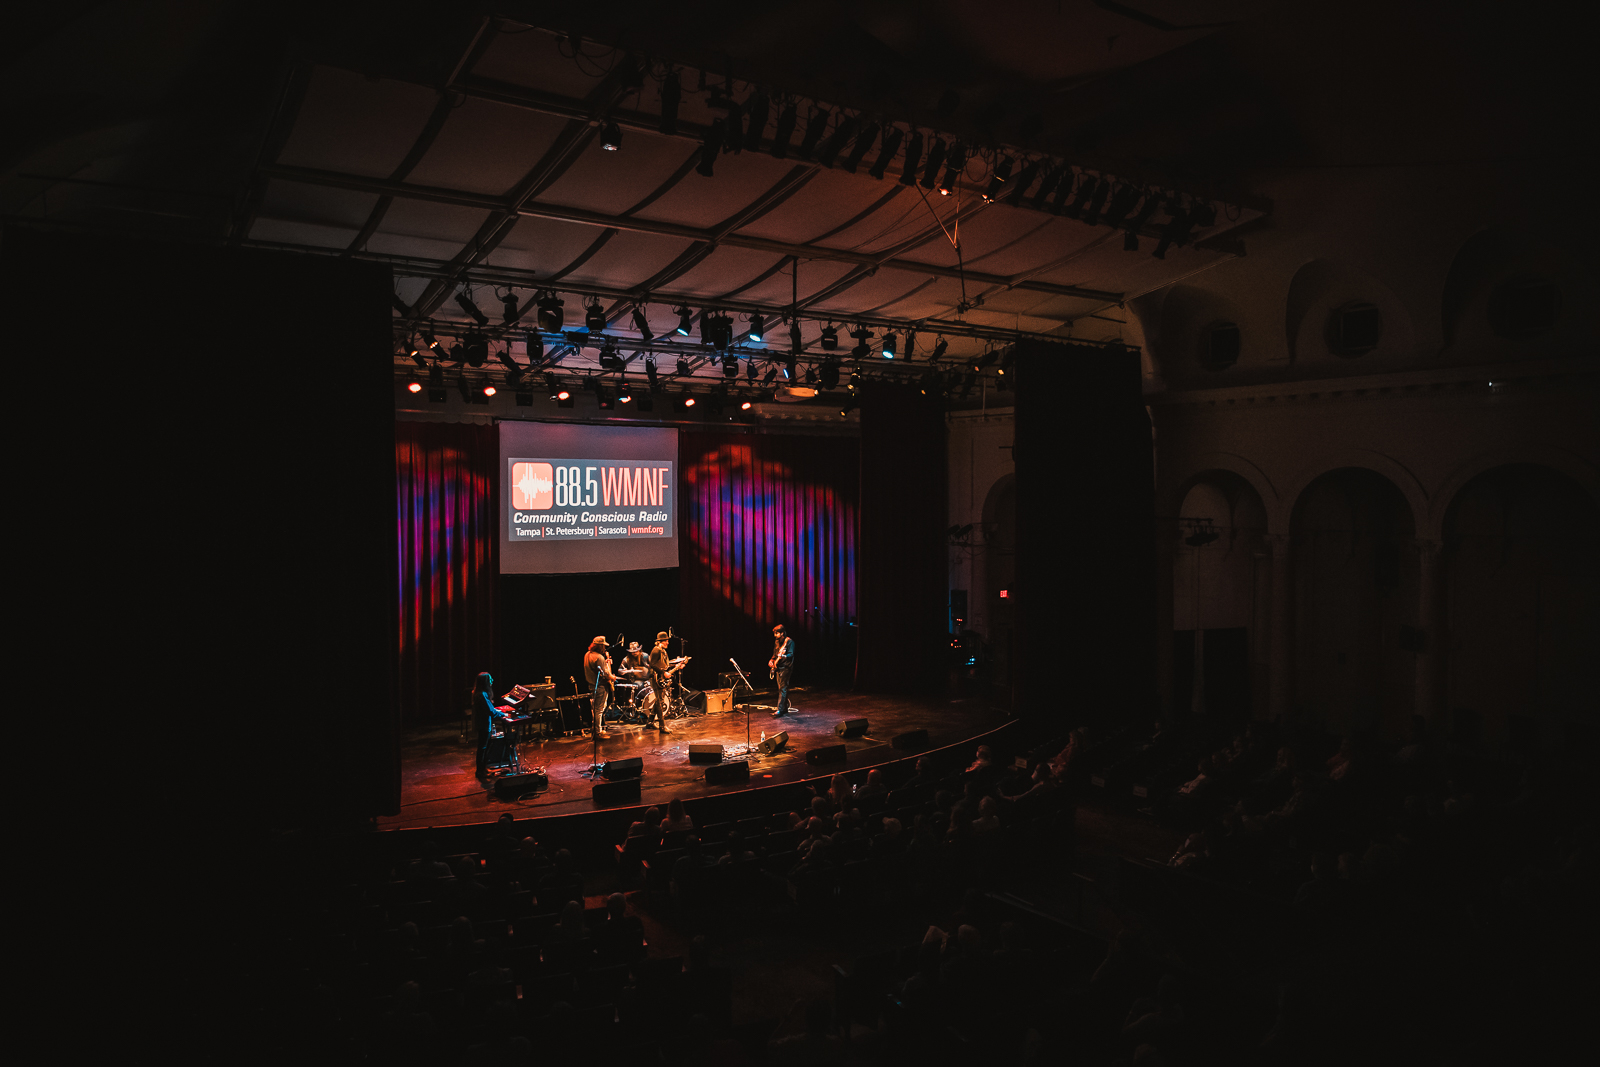 Dylan Leblanc Performs at WMNF's 42nd Birthday   Chandler Culotta 9/11/21